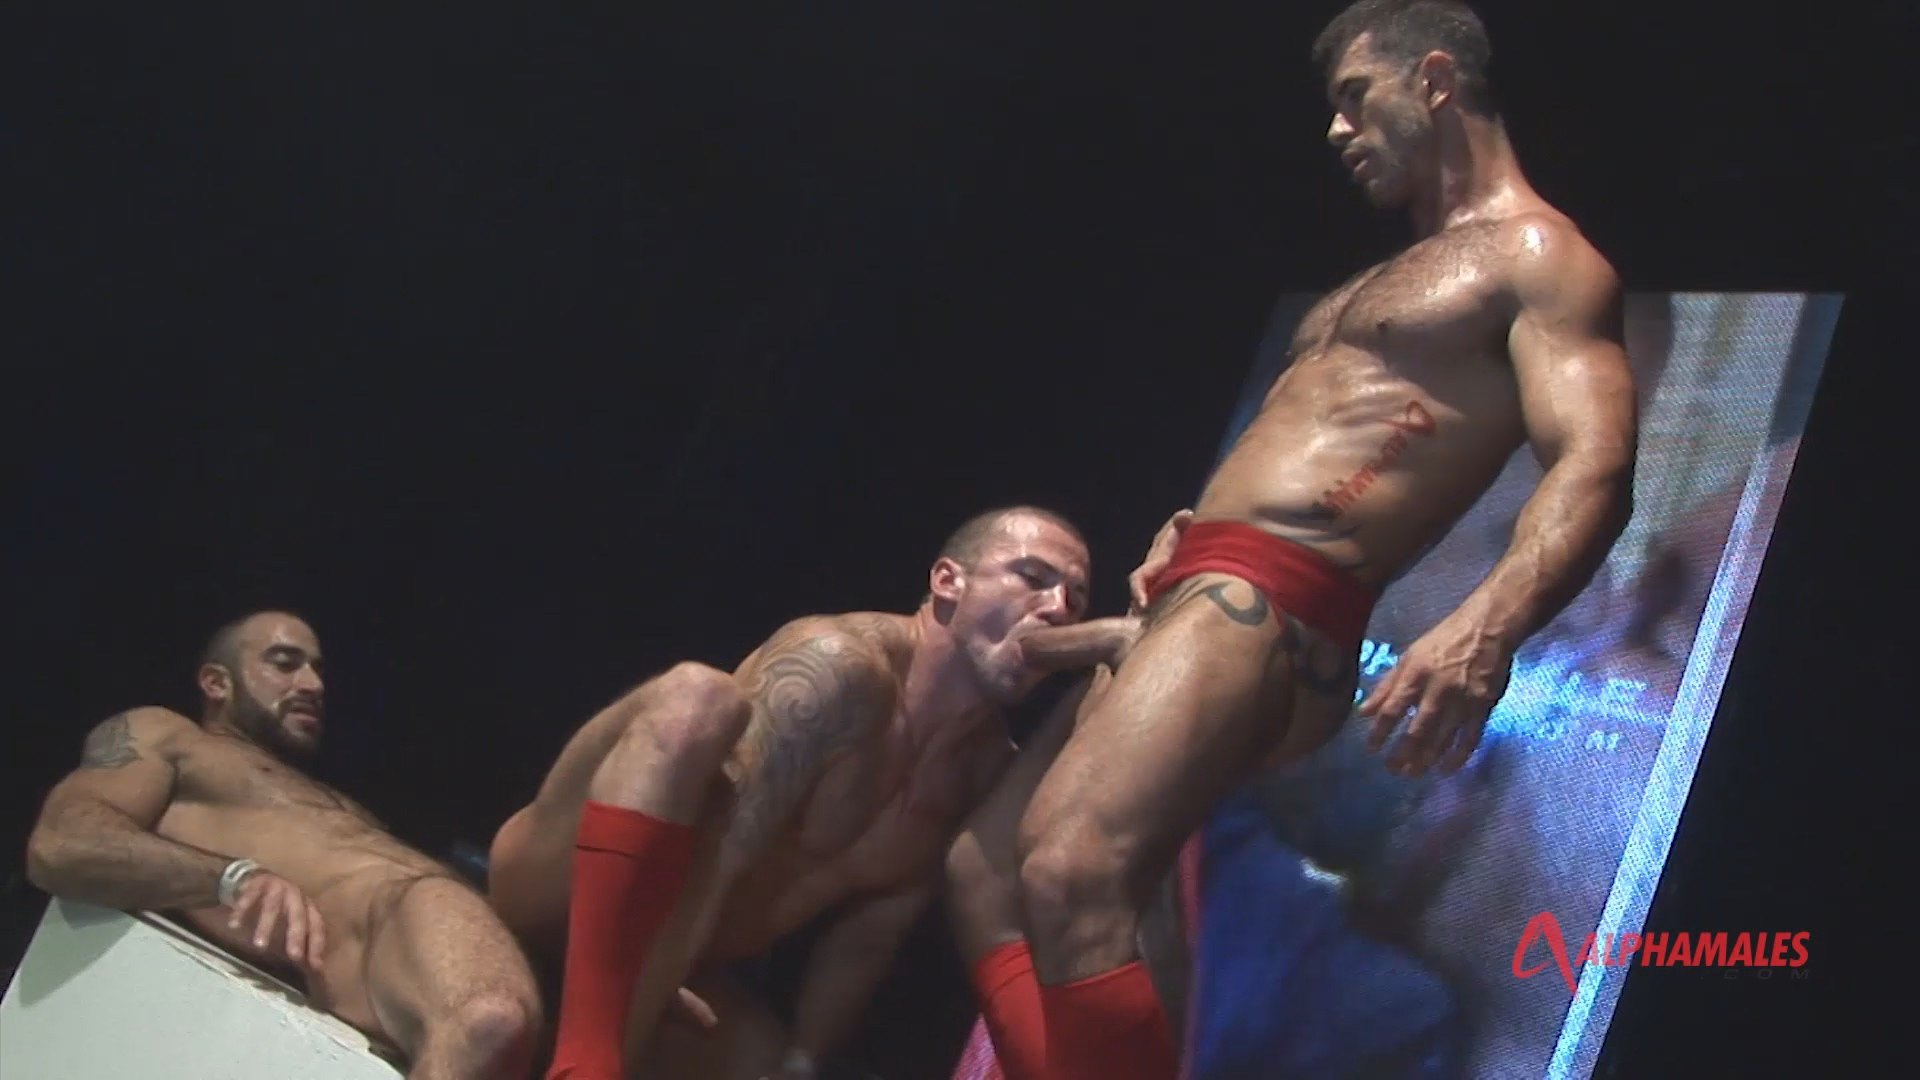 Toolbox Live Xvideo gay